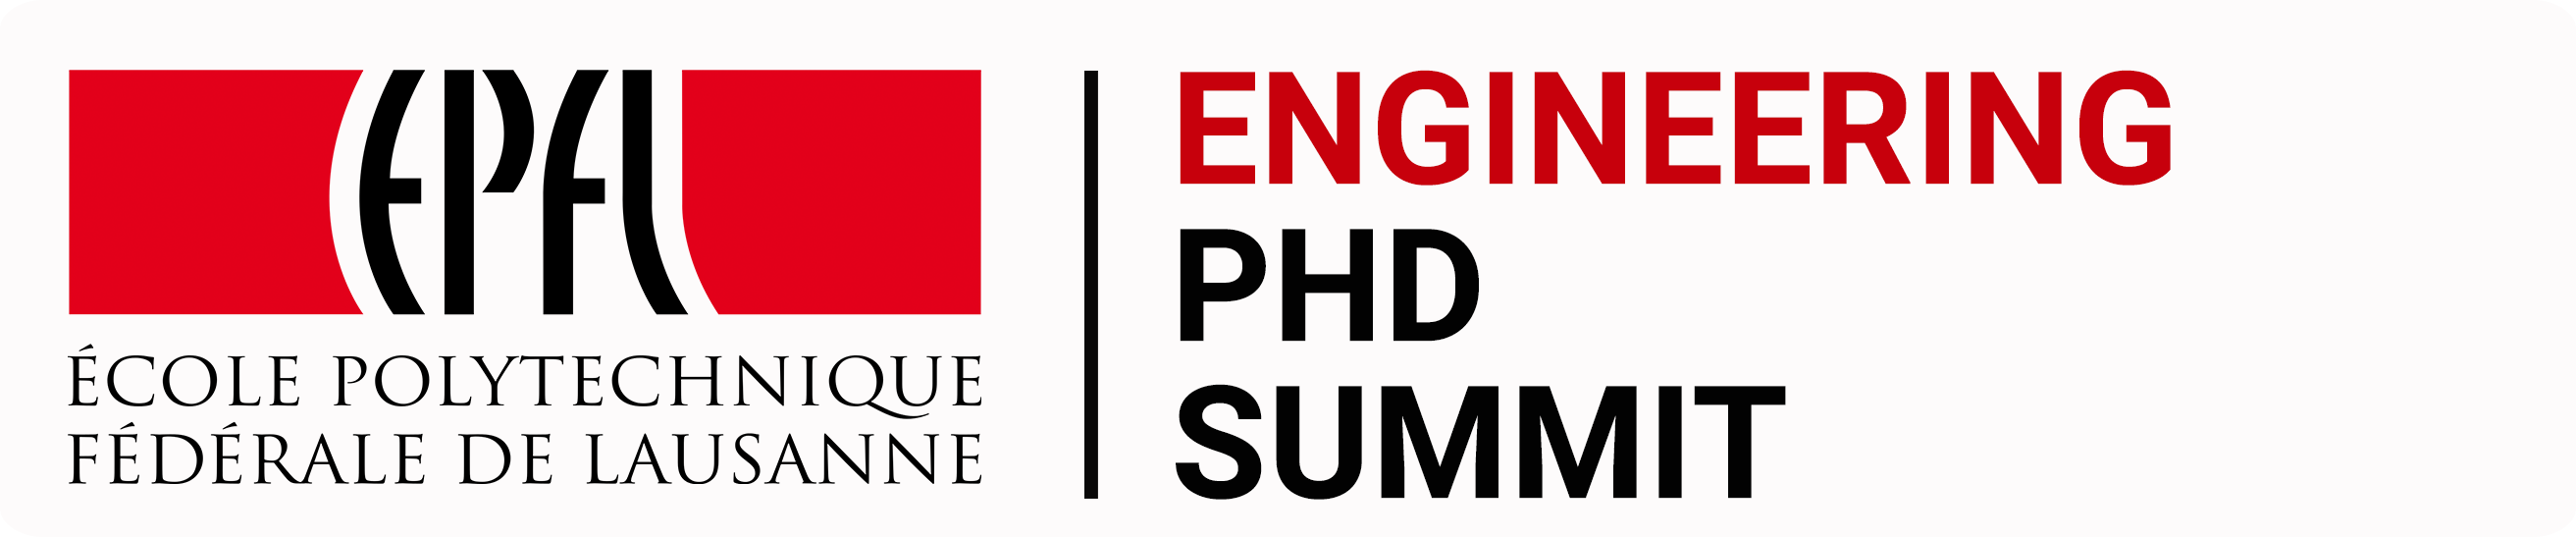 ENGINEERING PHD SUMMIT